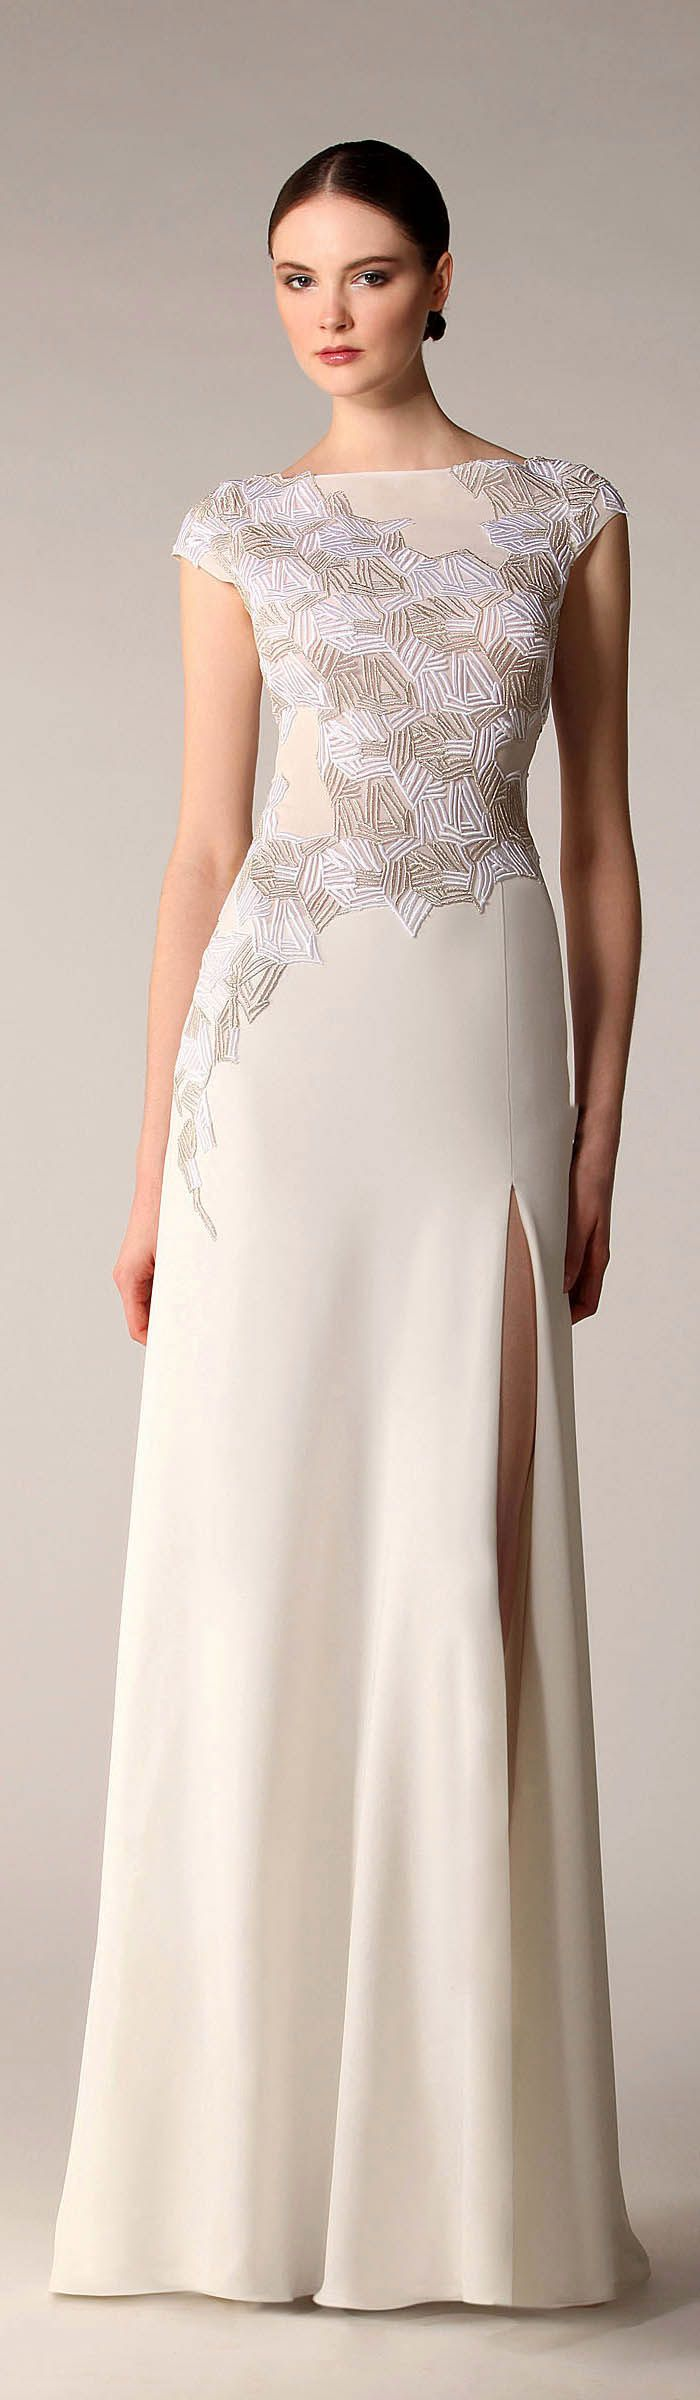 +2014 HAUTE COUTURE BRIDAL GOWNS | Tony Ward Fall Winter 2013-2014 - Fashion Diva Design